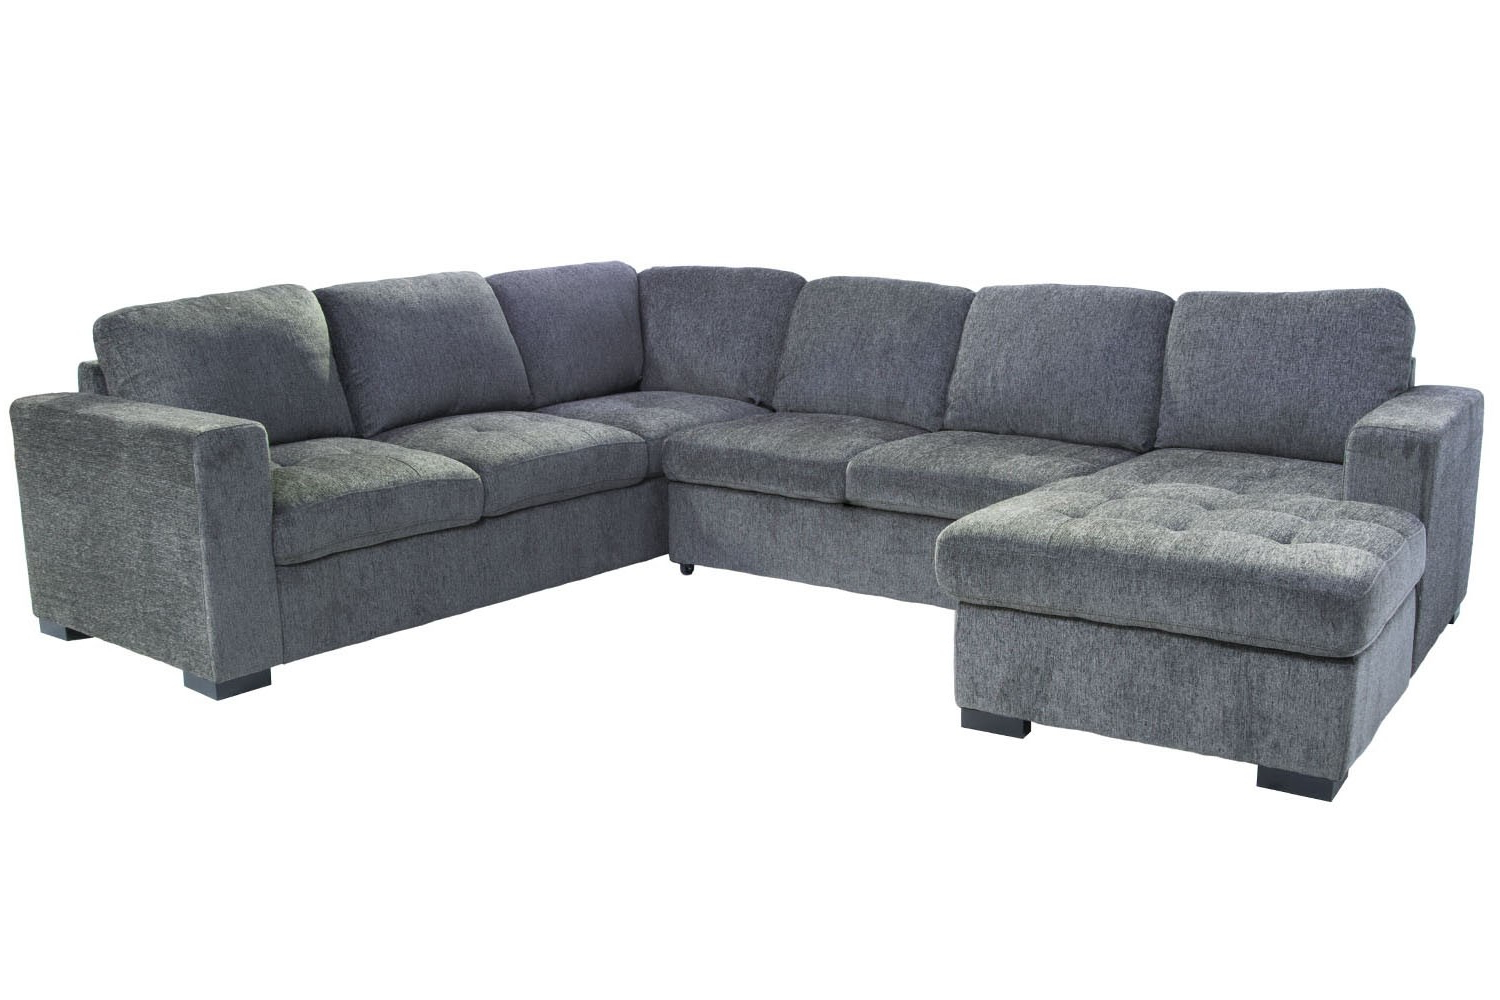 2018 Escondido Sofa Chairs Within Sectional Sofas (Gallery 15 of 20)